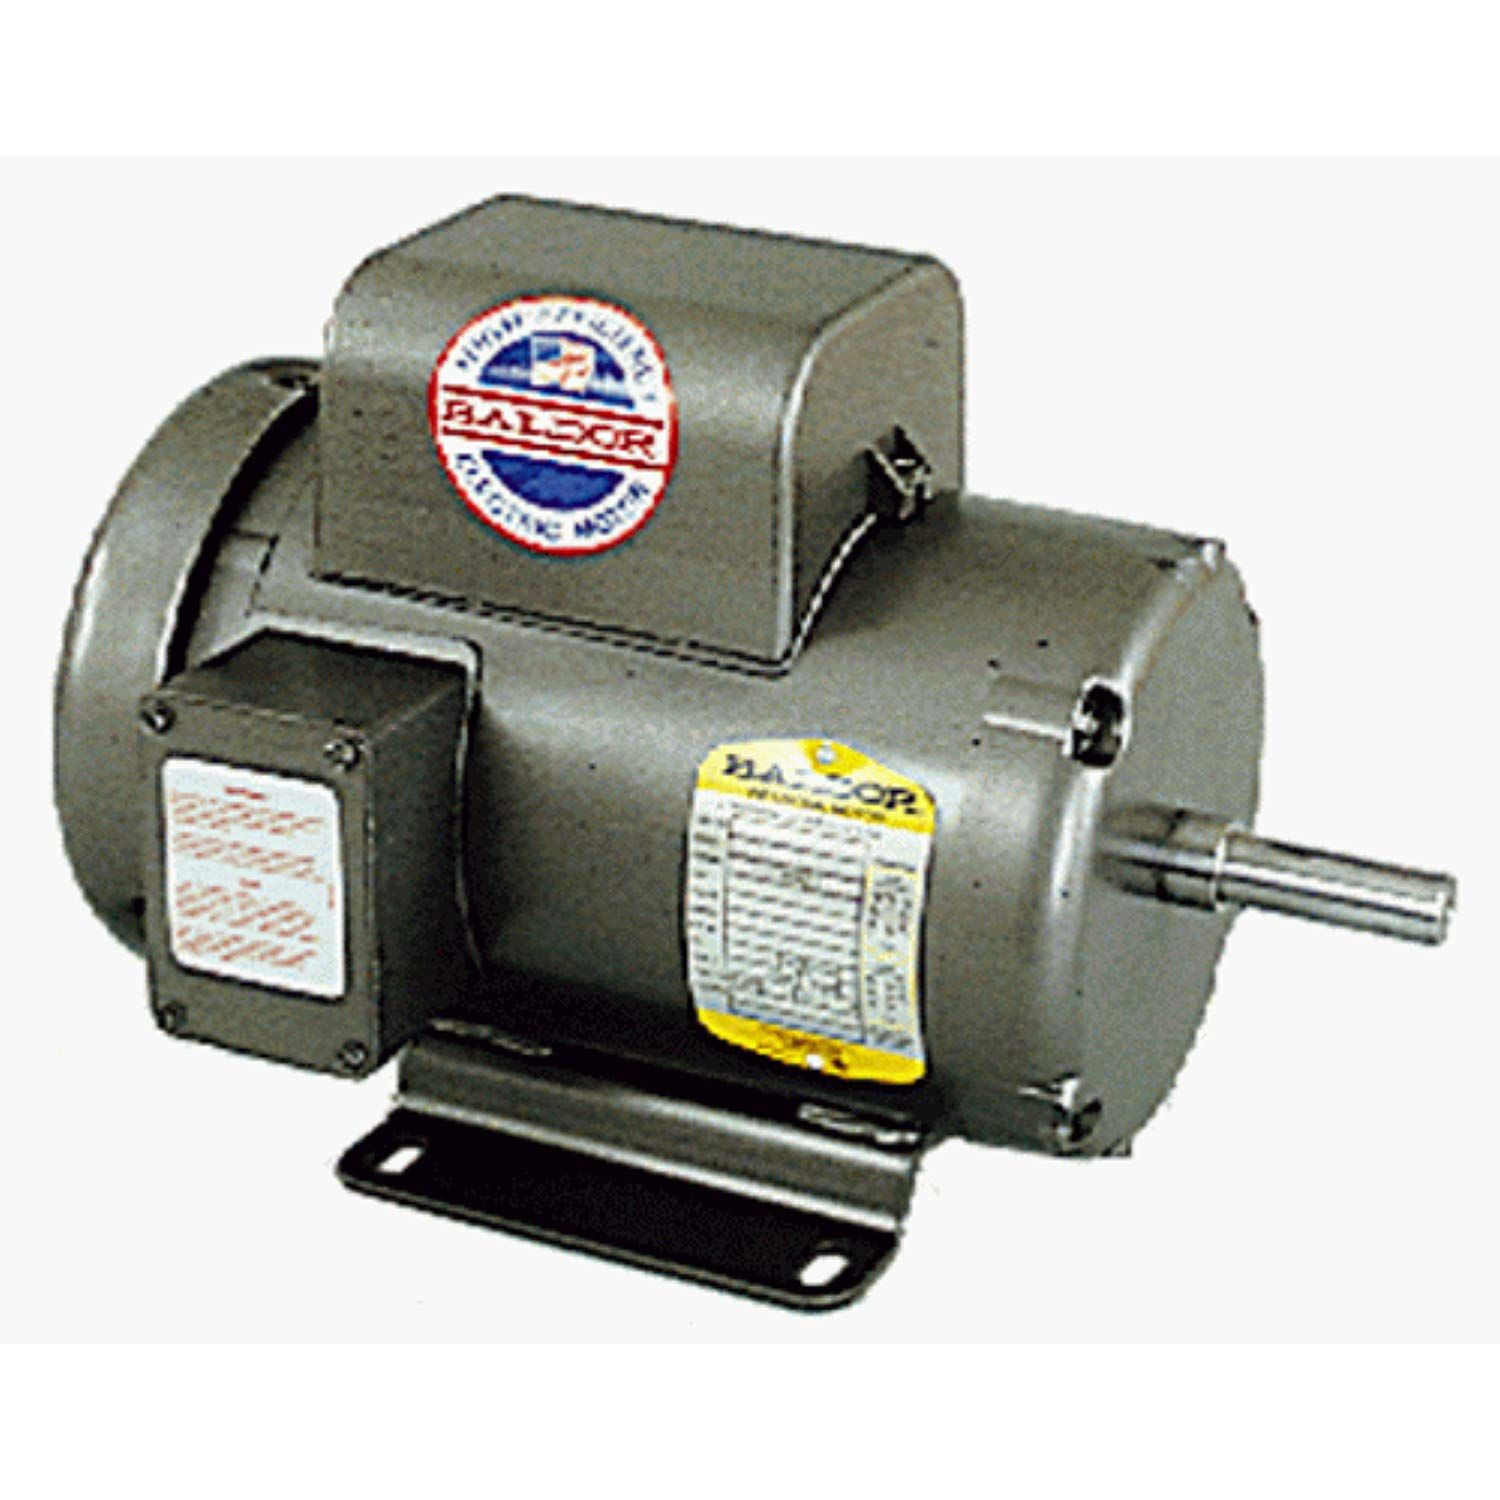 Baldor FDL3510M 1 Horsepower 1725 RPM Industrial Electric